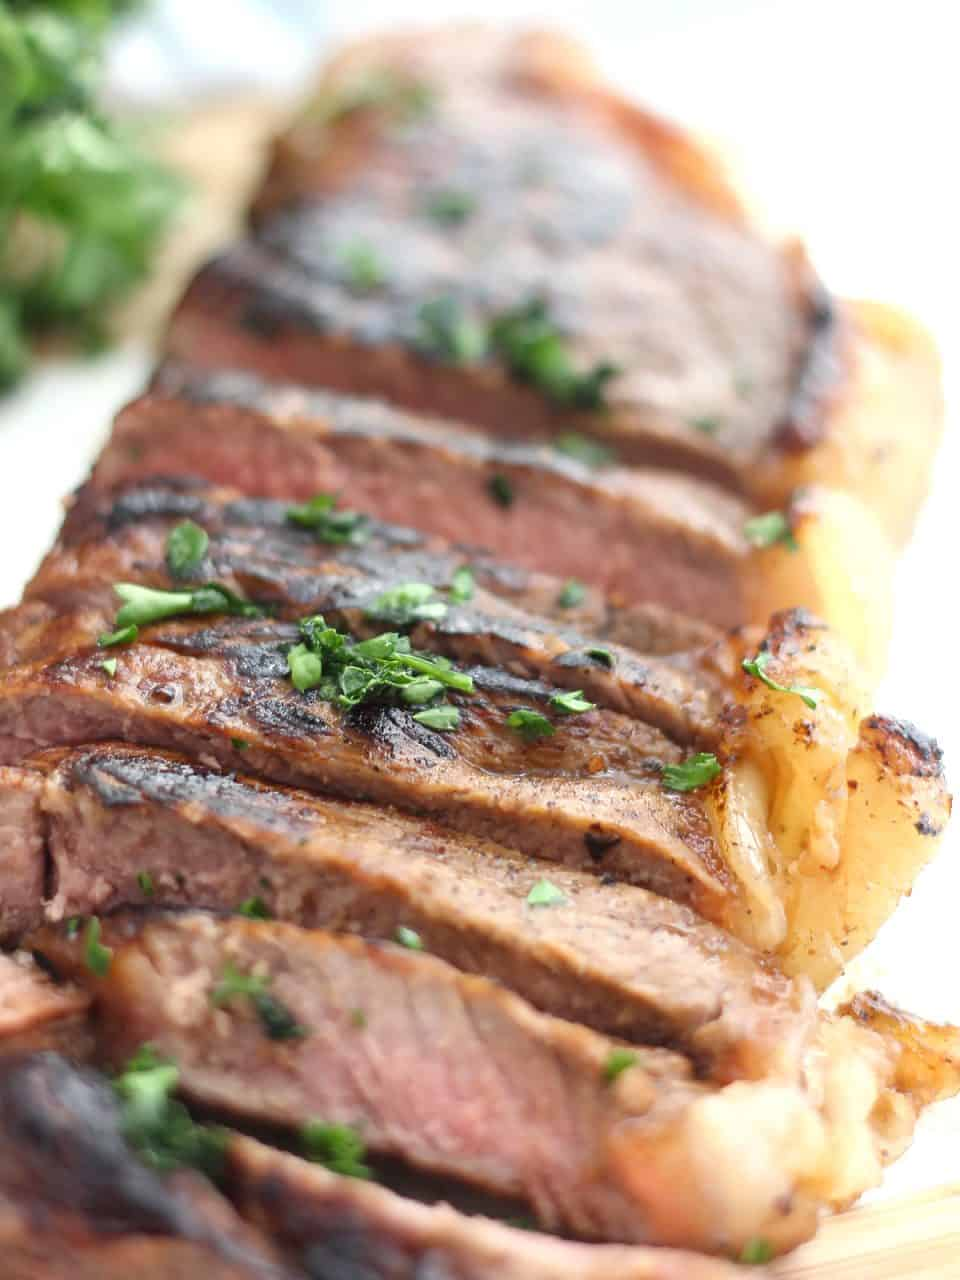 Close up of a sliced marinated steak garnished with parsley.